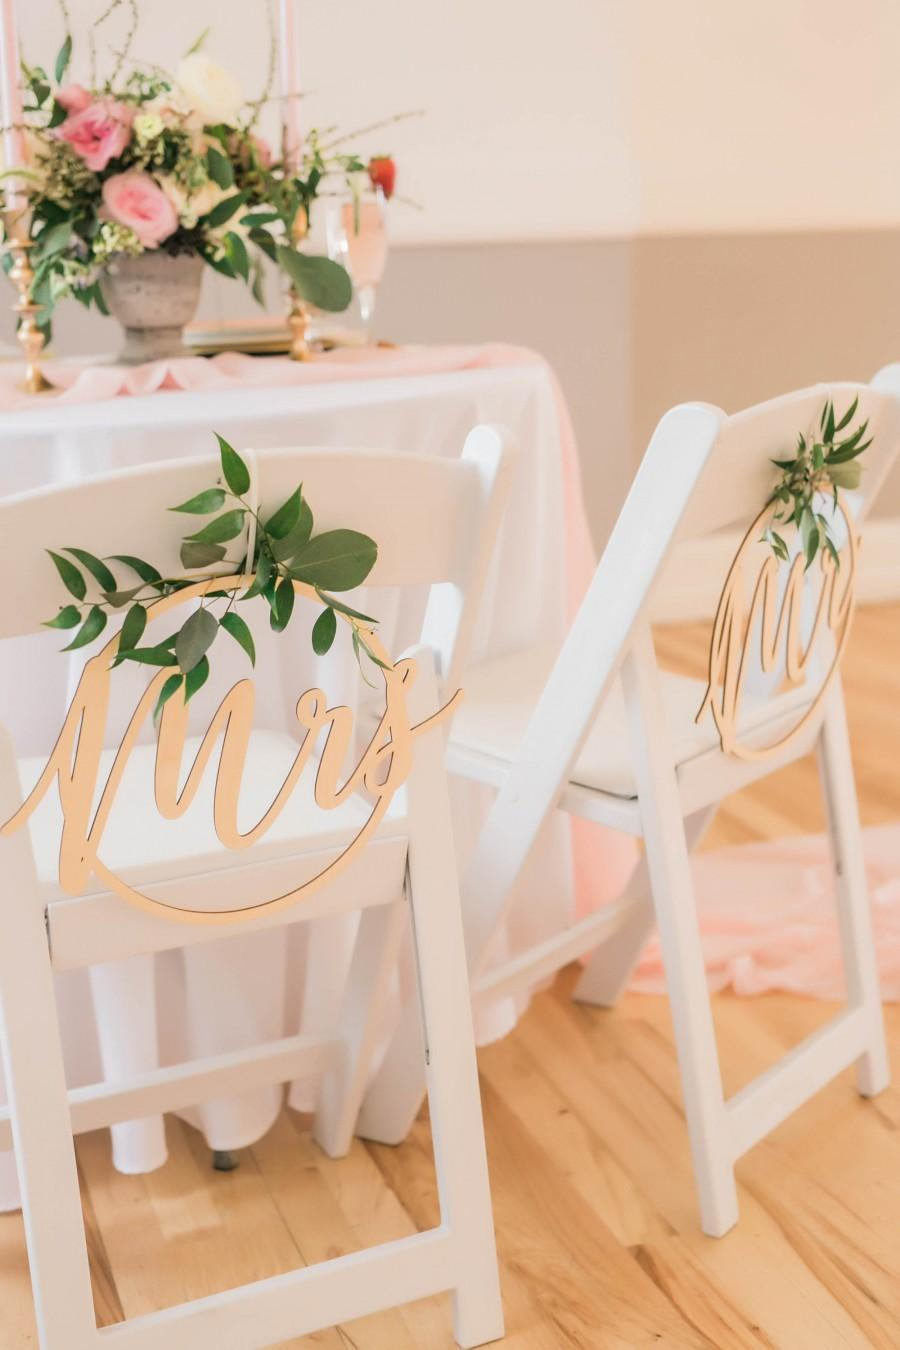 Mariage - Mr and Mrs Wedding Chair Signs - Mr and Mrs - Circle Wedding Sign - Chair Back Sign - Sign for Back of Chair Bride and Groom - Wooden